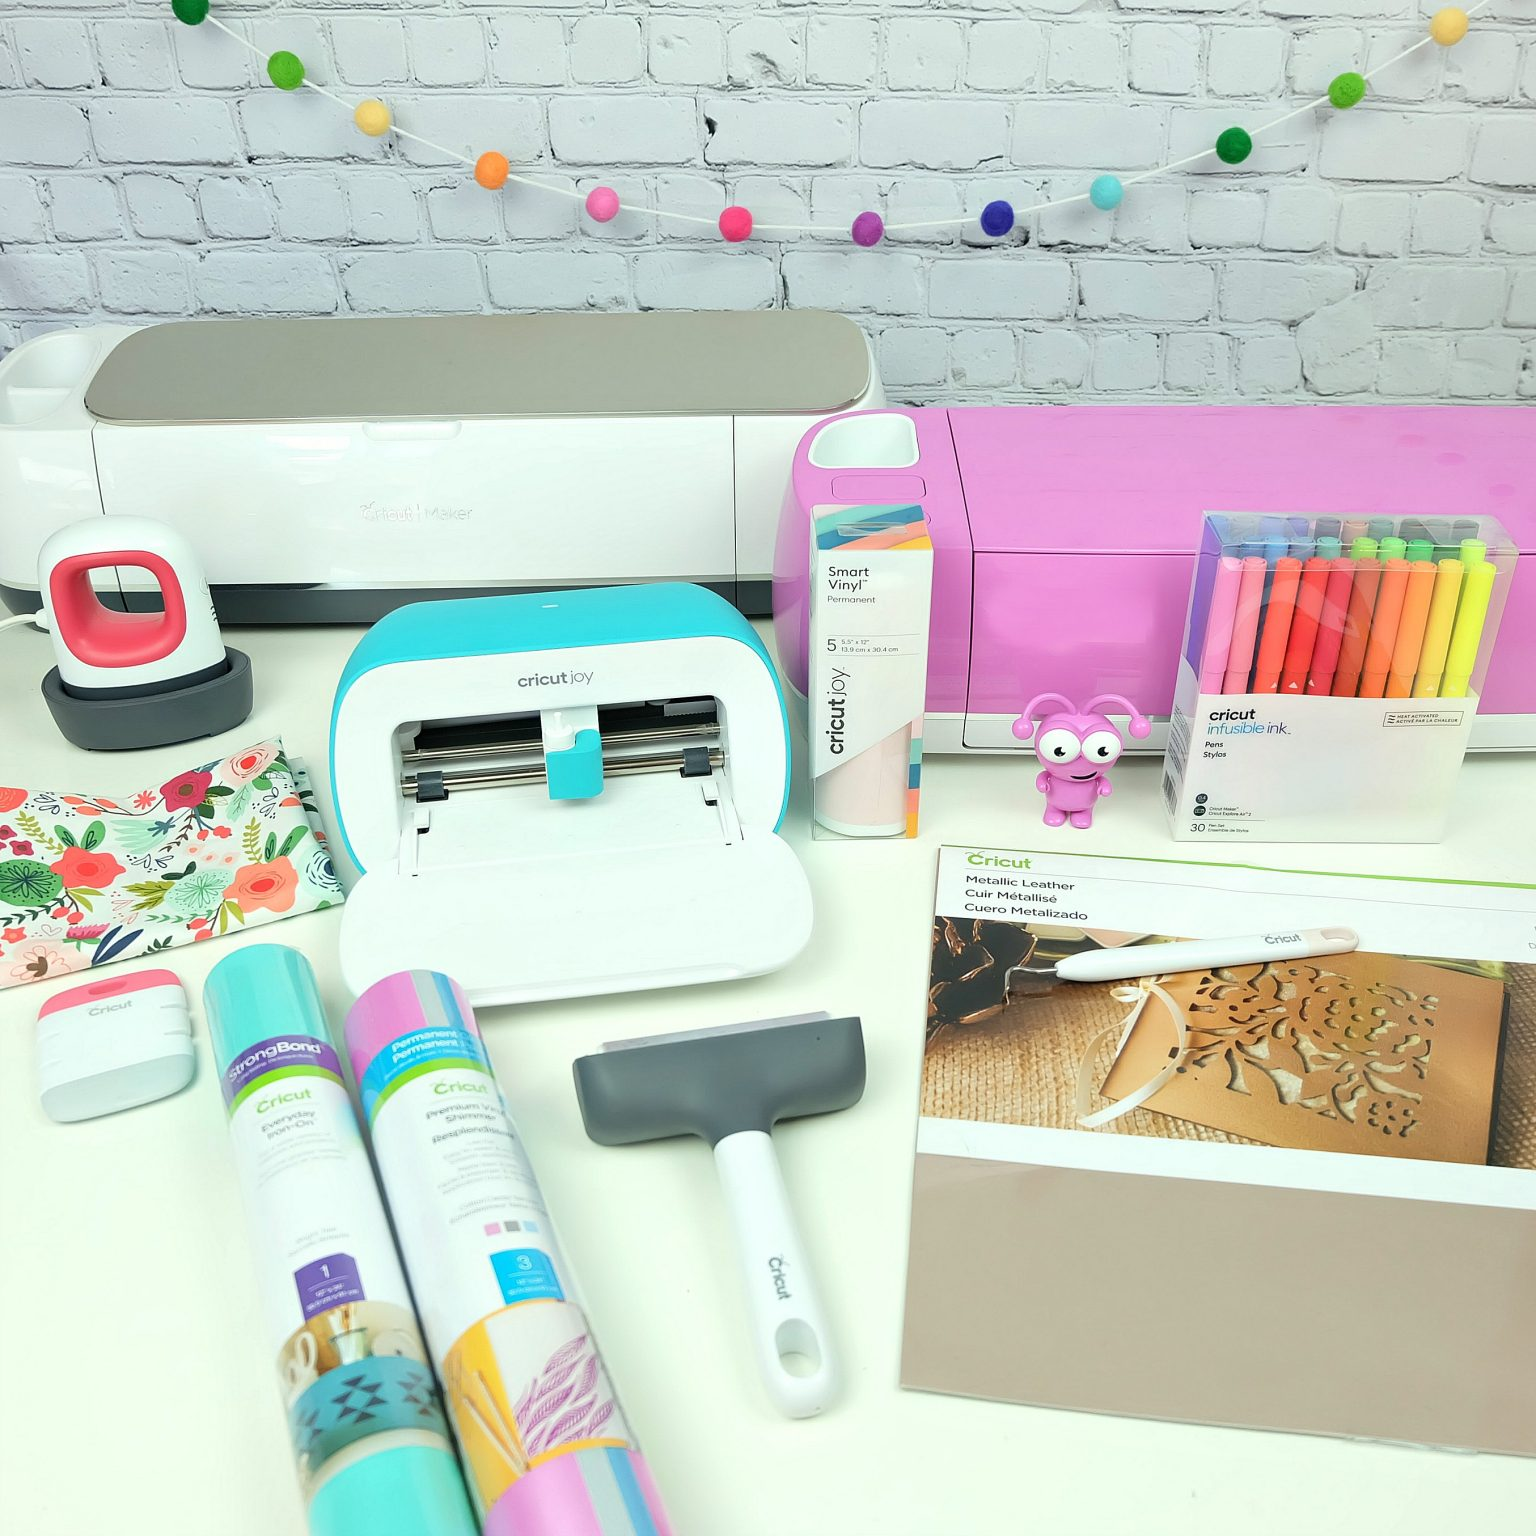 Cricut Cutting Machines laid out with craft supplies